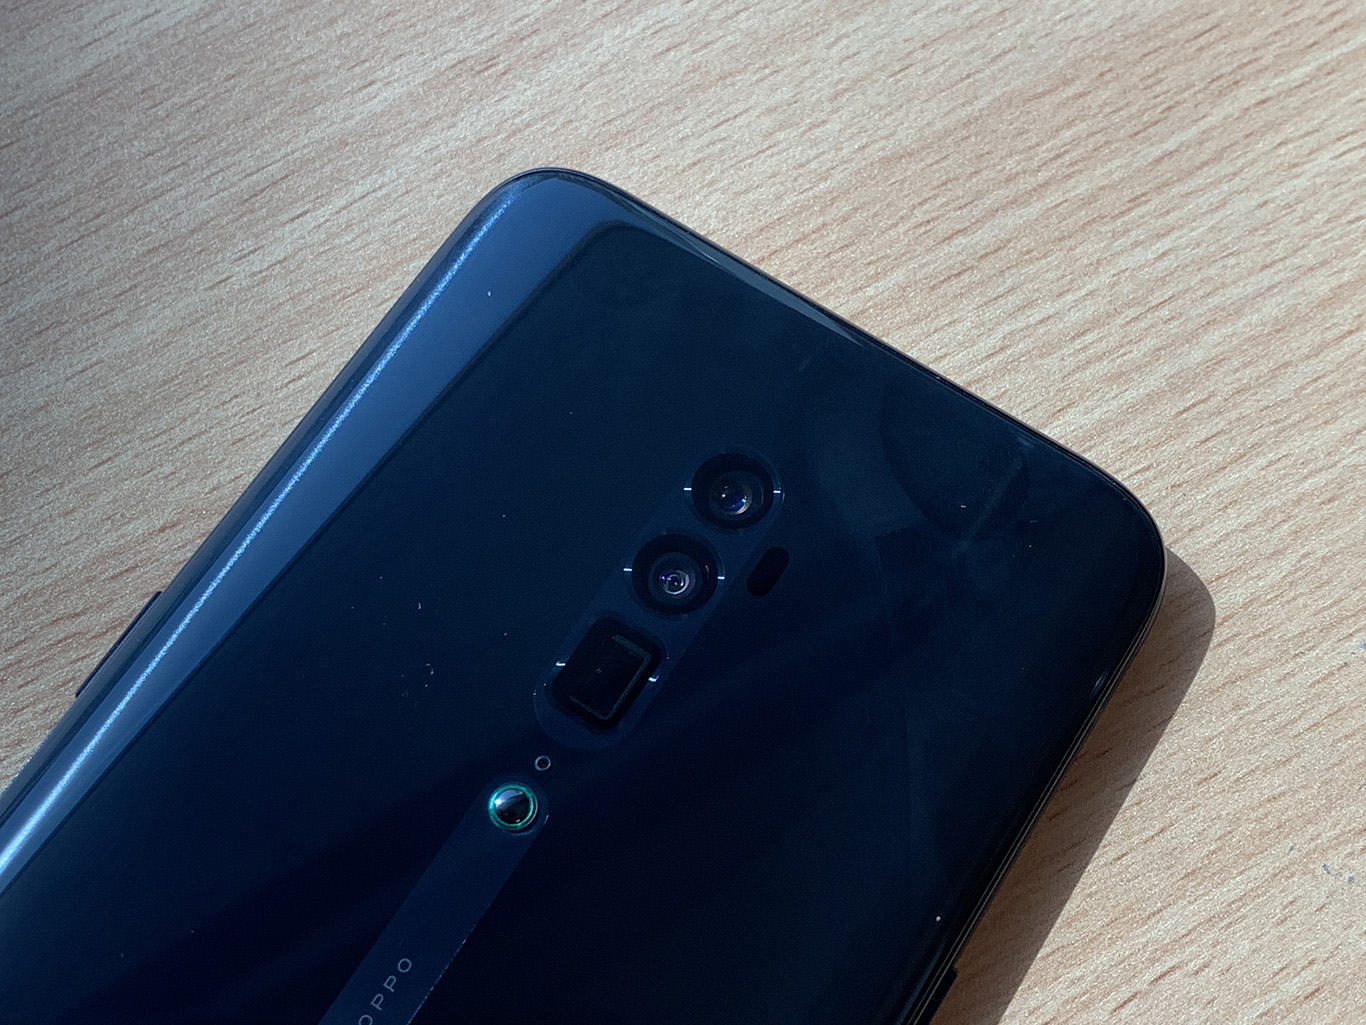 OPPO Reno 10x: Get closer to the action